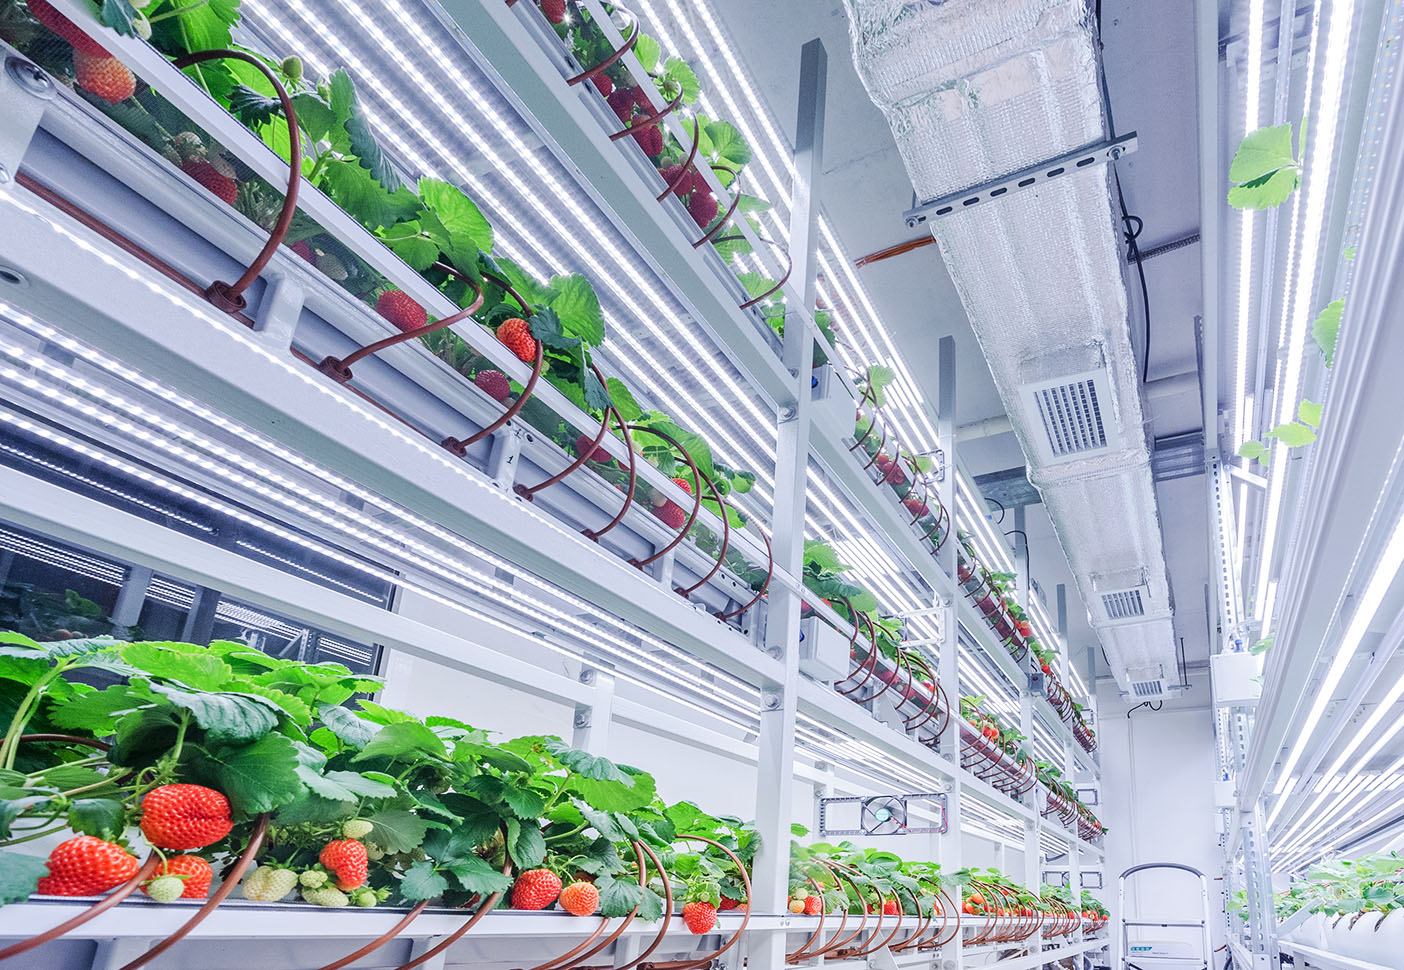 Strawberries grown with iFarm vertical farming technology